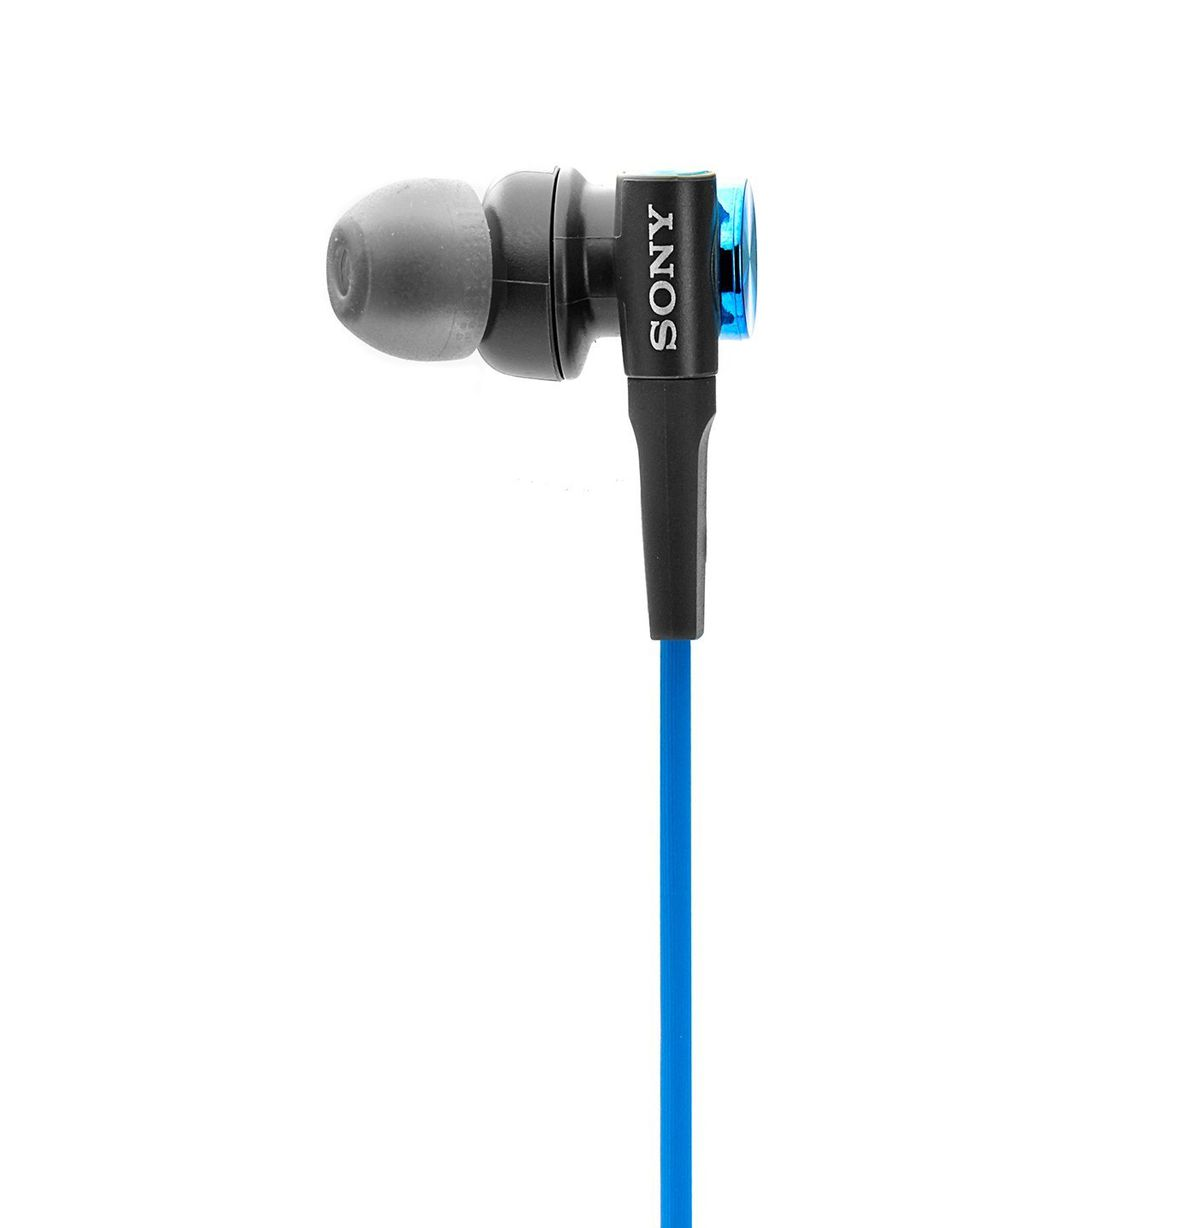 134470a50ca Best earbuds 2019: 10 top picks on Amazon according to reviews